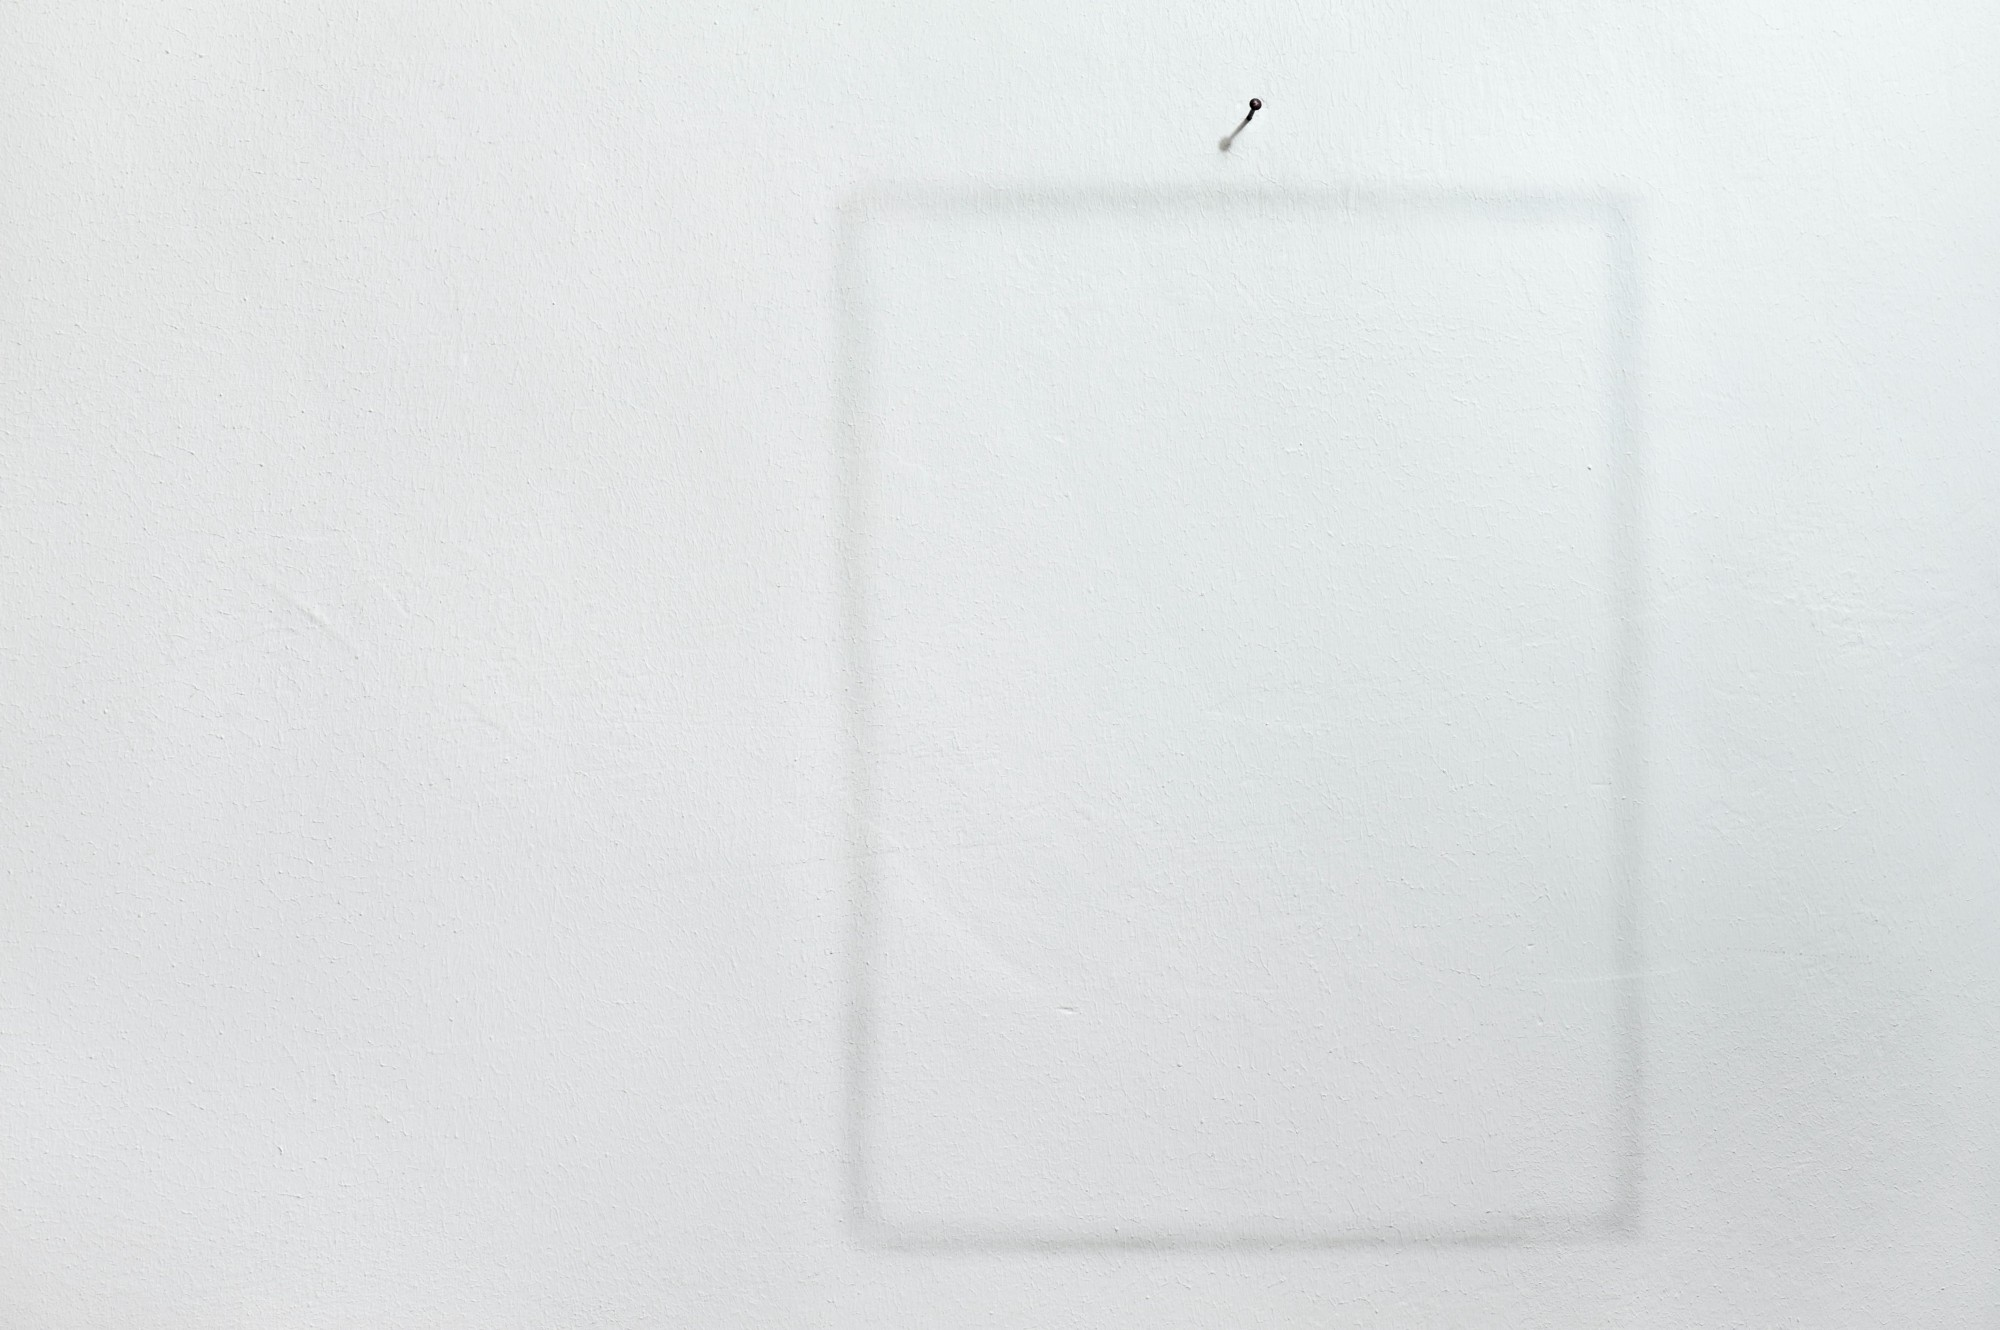 A white wall with an outline of a picture frame, with a nail above it.